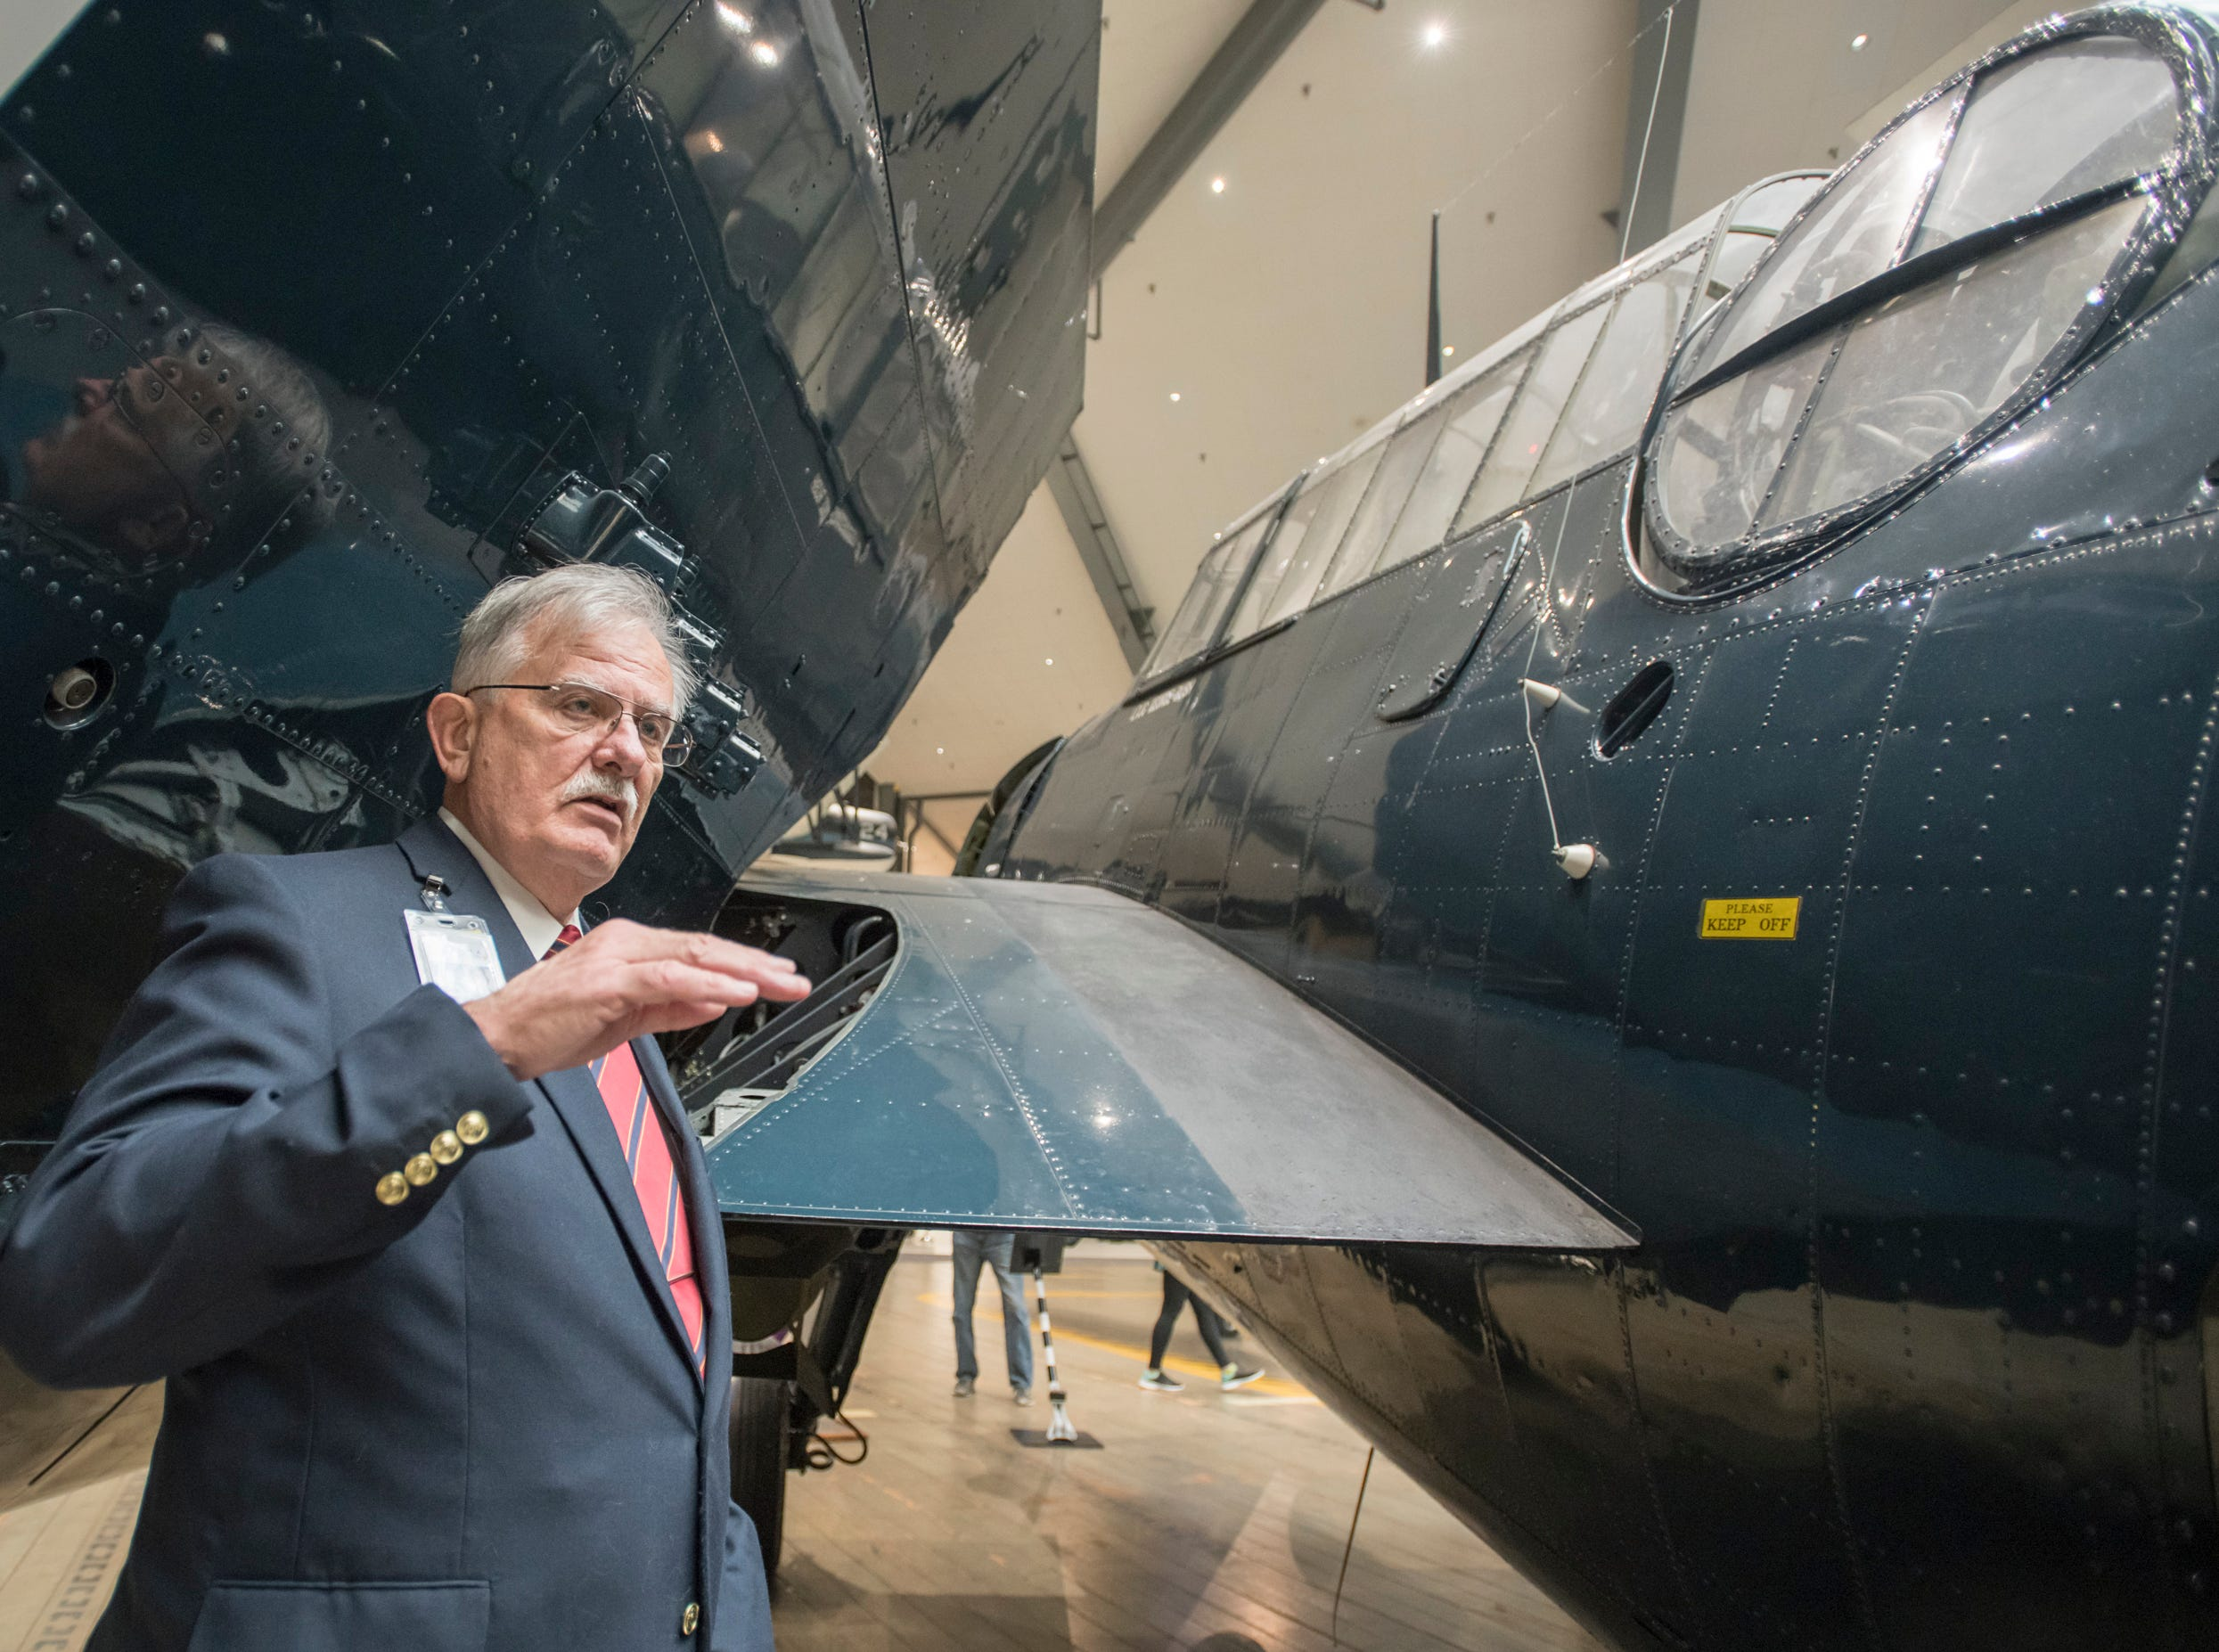 Docent Rick Fremgen talks about the TBM Avenger that is on display at the National Naval Aviation Museum in Pensacola on Wednesday, December 5, 2018.  This aircraft has George Bush's name stenciled on it in honor of President (then lieutenant junior grade) George H.W. Bush was shot down in this model during World War II.